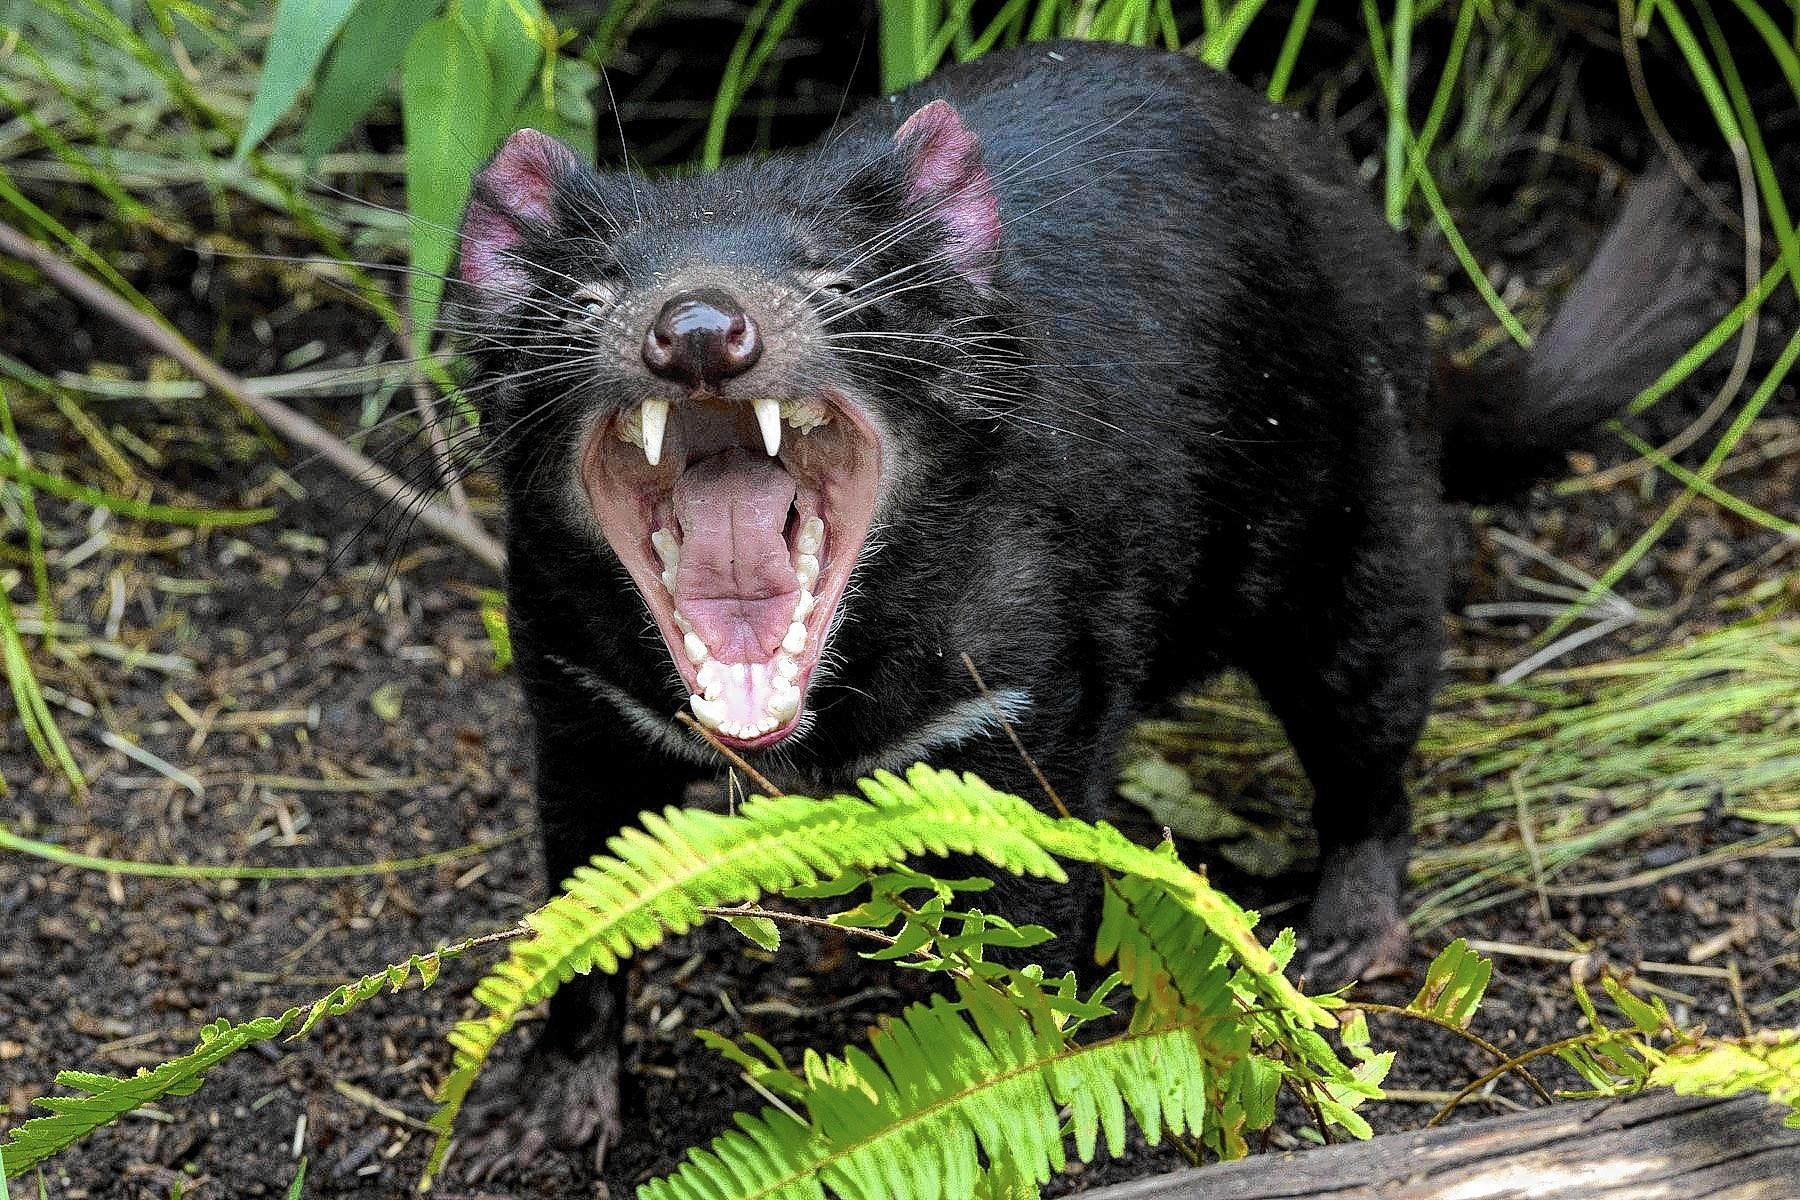 A Tasmanian devil emotes. Four are on loan from Australia to the San Diego Zoo as part of a public relations effort to alert the world to the plight of the creatures, which are threatened with extinction because of a contagious form of cancer.